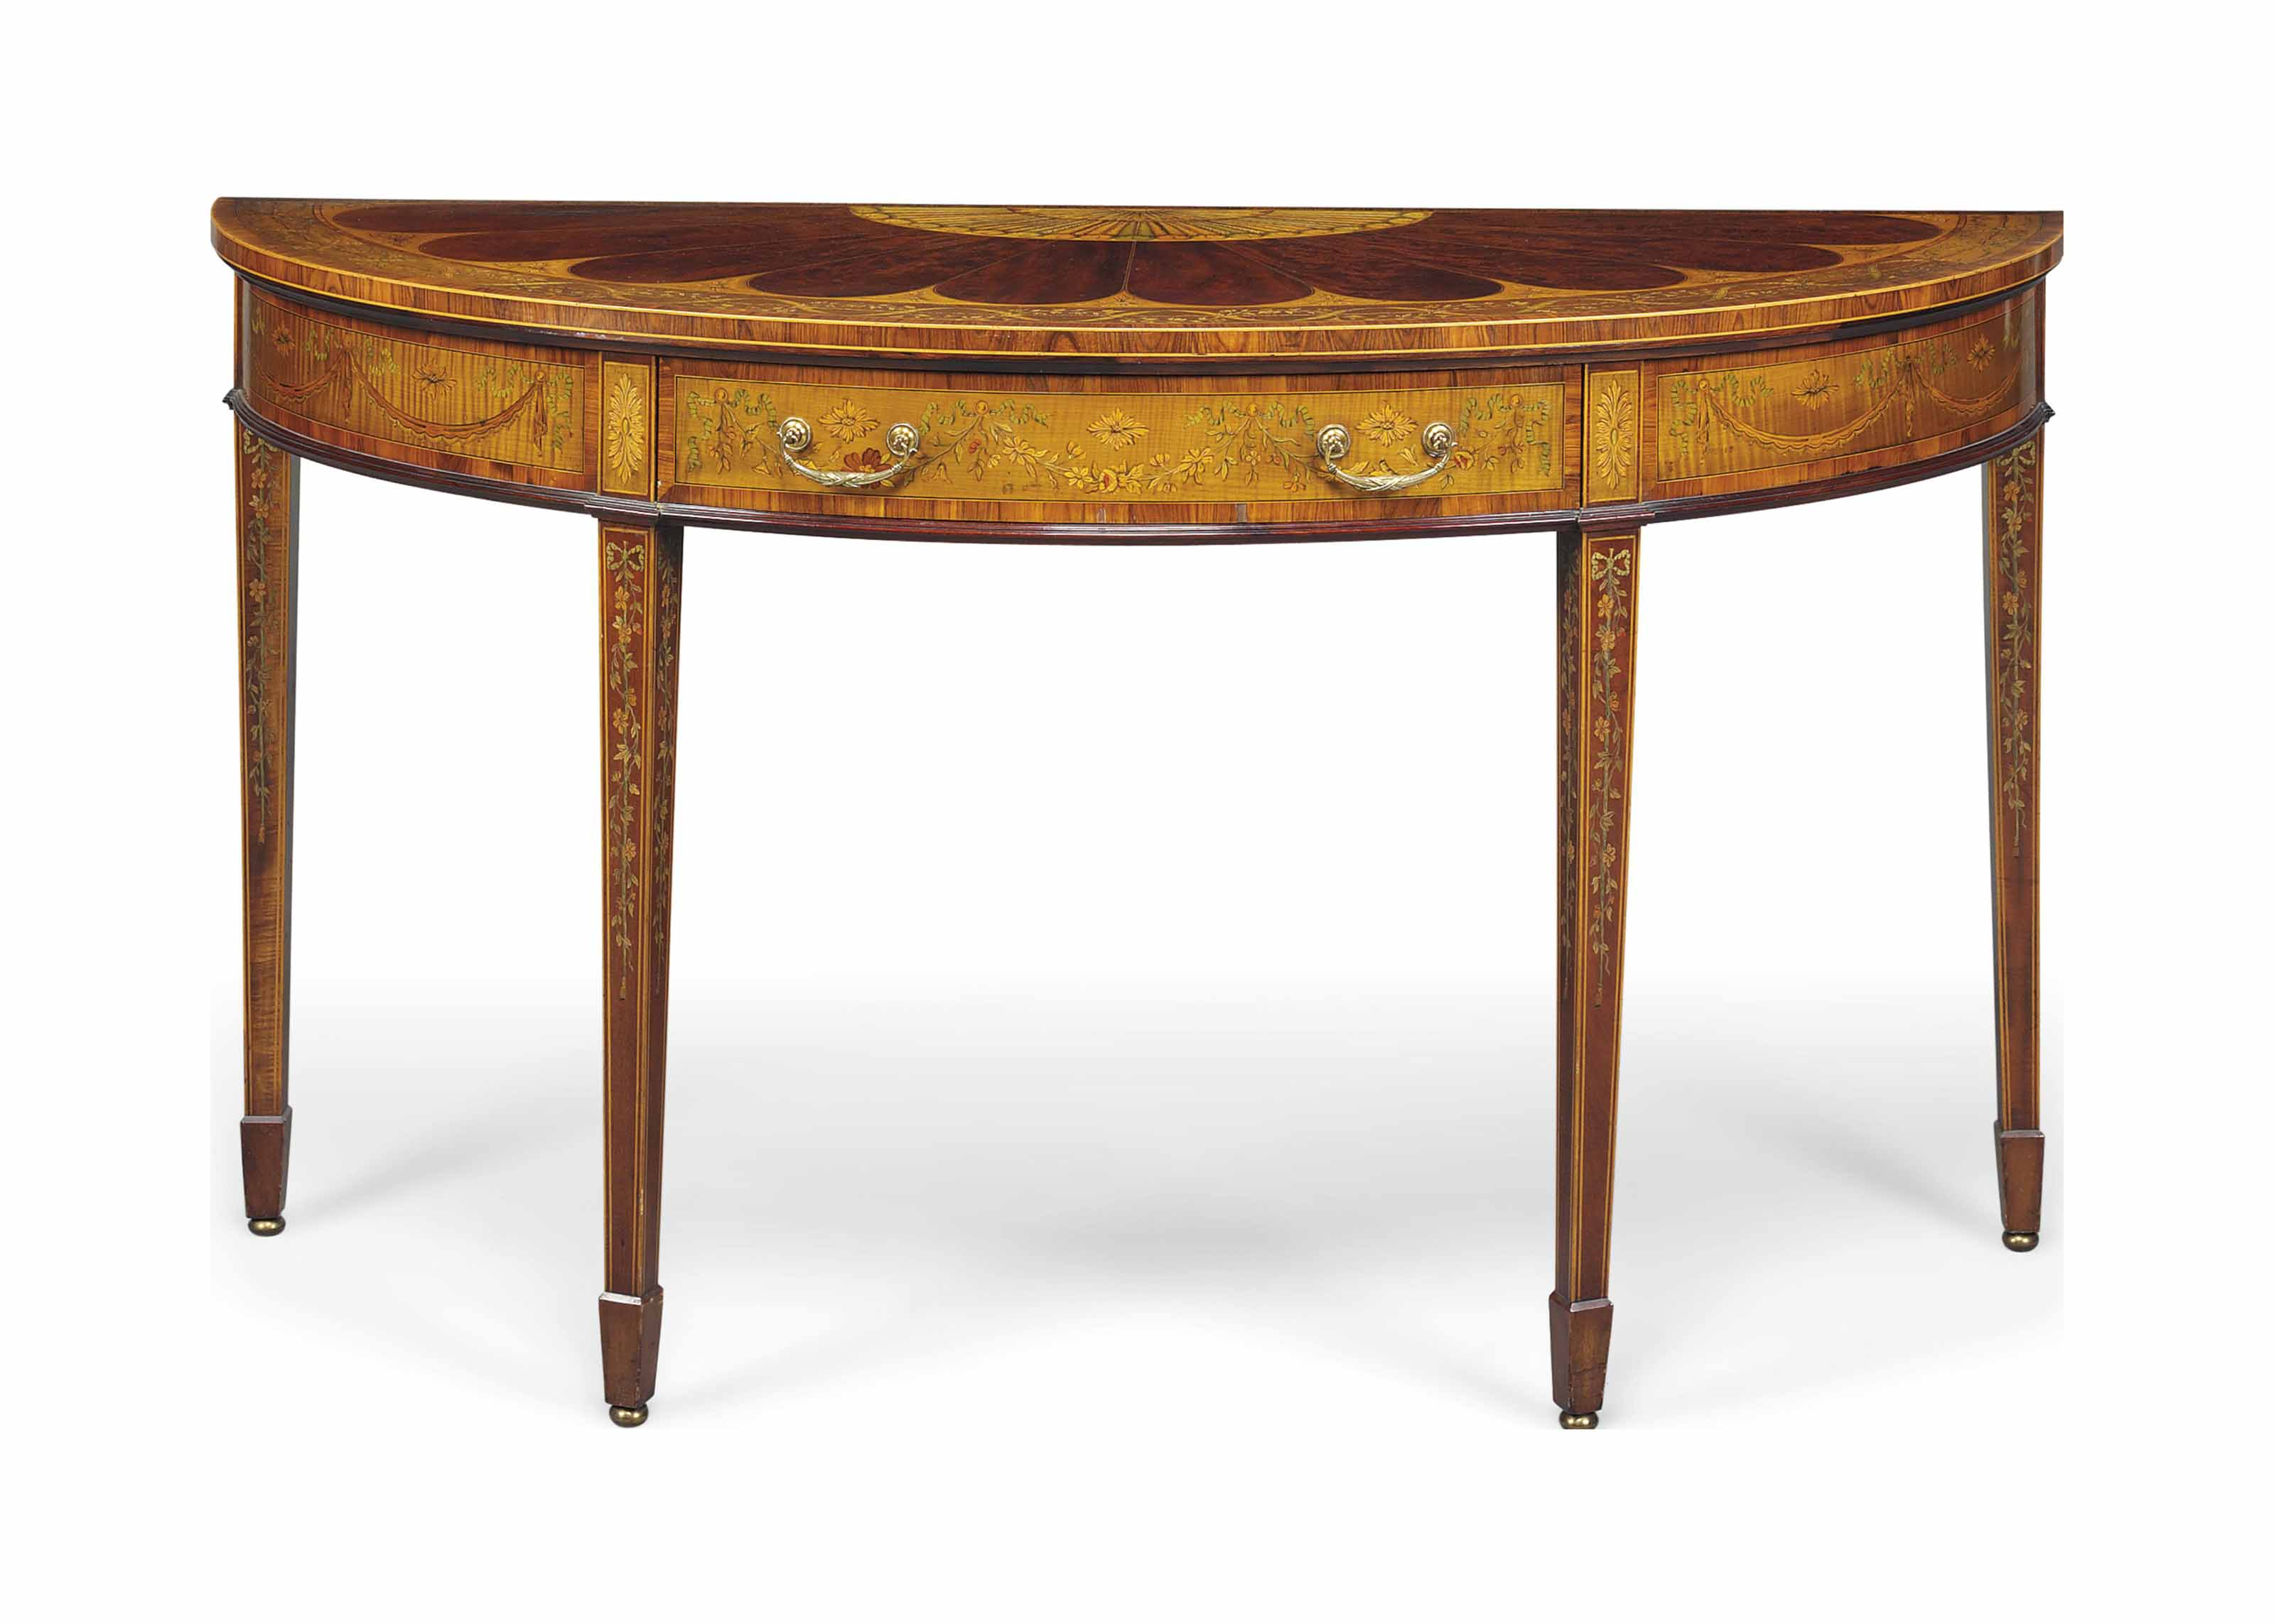 AN EDWARDIAN MAHOGANY, SATINWOOD, KINGWOOD-CROSSBANDED AND MARQUERTY DEMI-LUNE SIDE TABLE